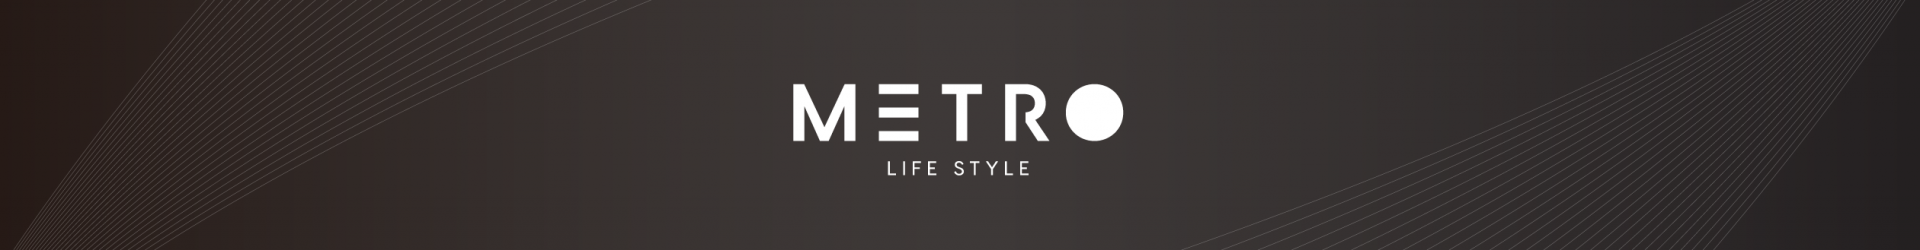 【MetroStorage & MetroWine:  Referral Program】